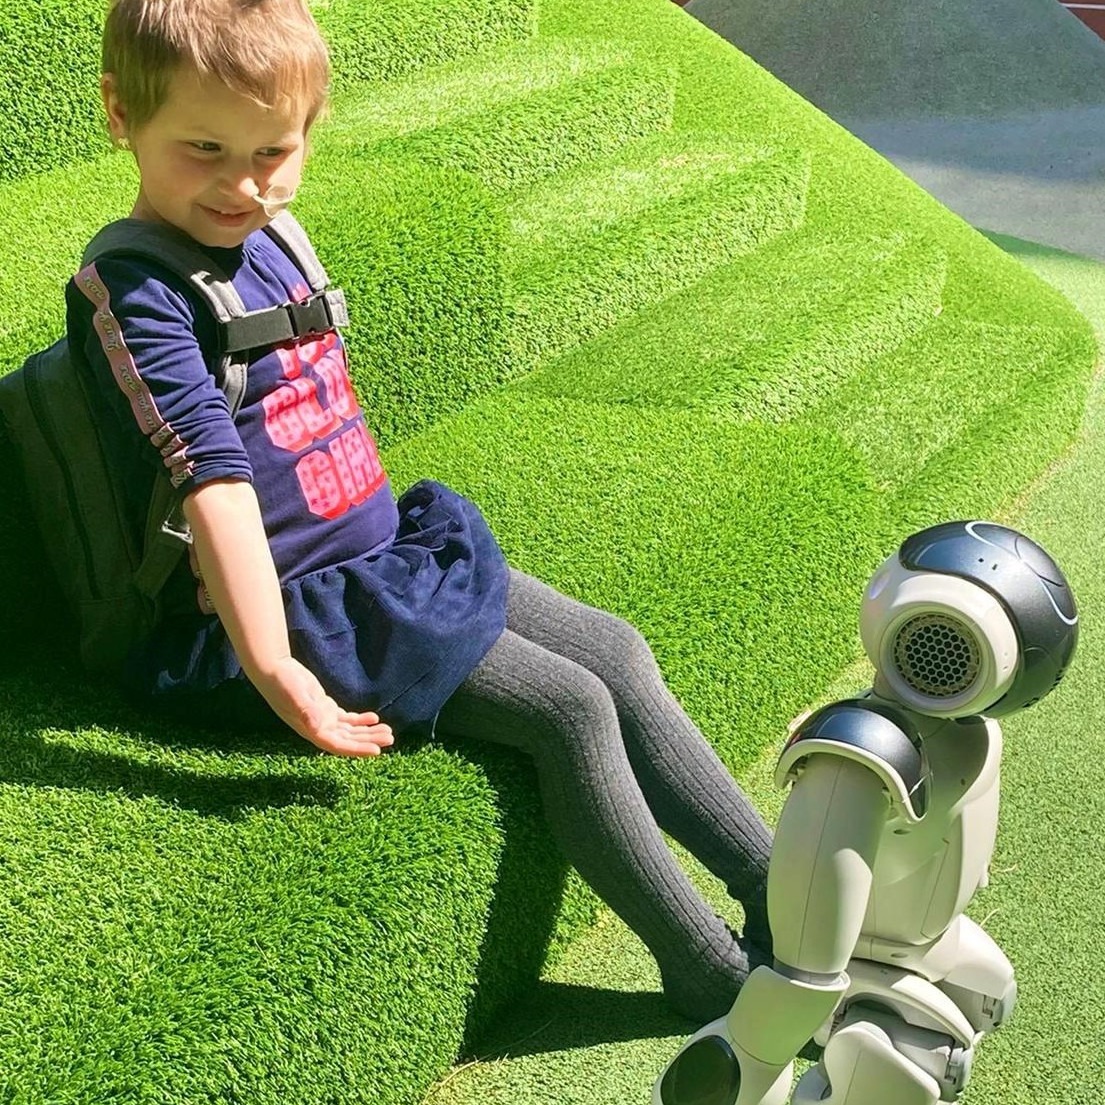 Hero, a robot buddy for kids